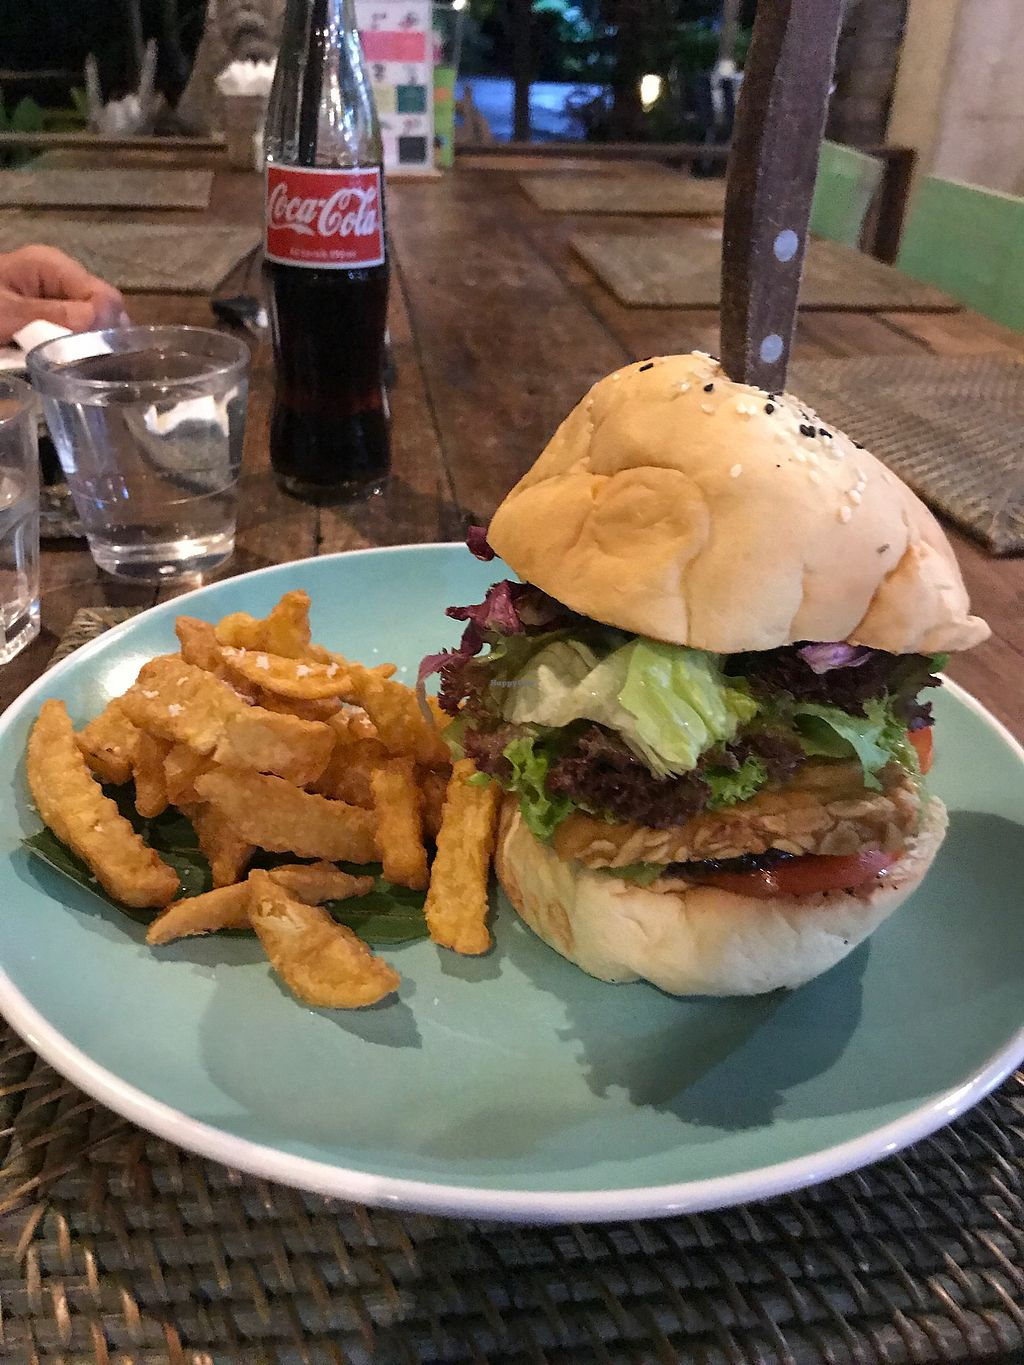 """Photo of The Cashew Tree  by <a href=""""/members/profile/LolaNachtigall"""">LolaNachtigall</a> <br/>Vegan Tempeh Burger :)  <br/> November 19, 2017  - <a href='/contact/abuse/image/75644/326998'>Report</a>"""